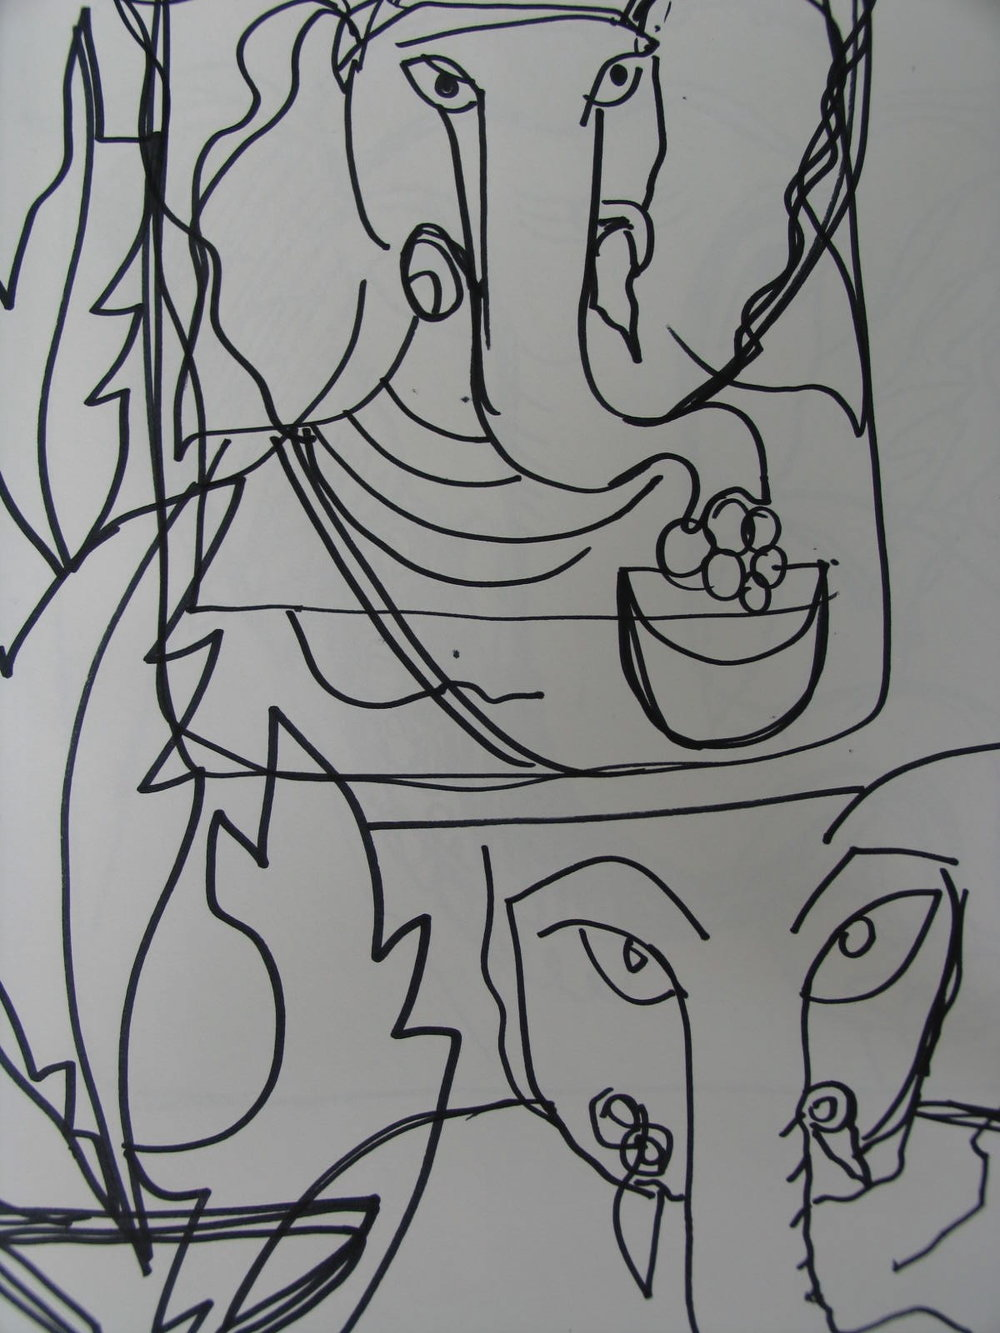 Sri Ganeshji Sketch 5